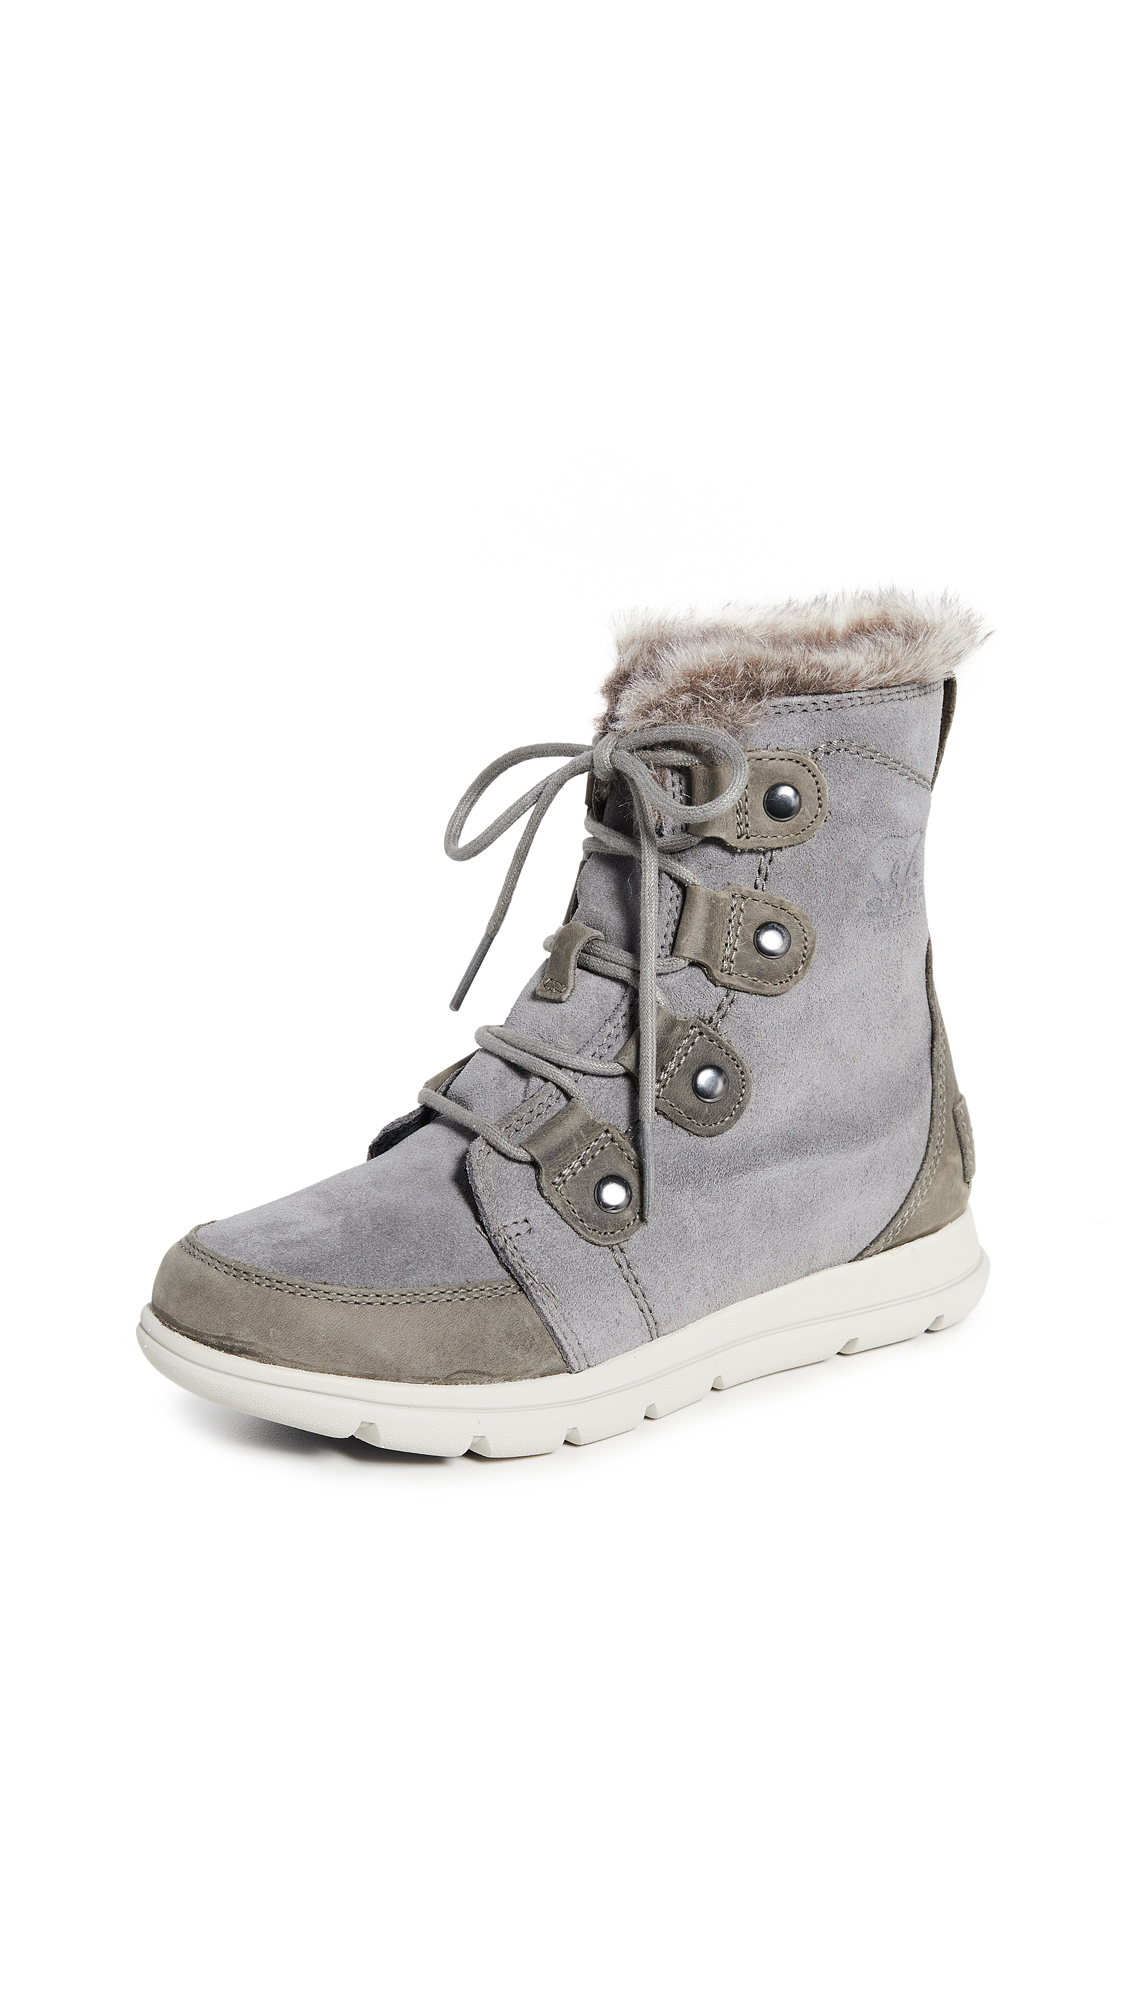 Photo of Sorel Sorel Explorer Joan Boots - shop Sorel Boots, Flat online